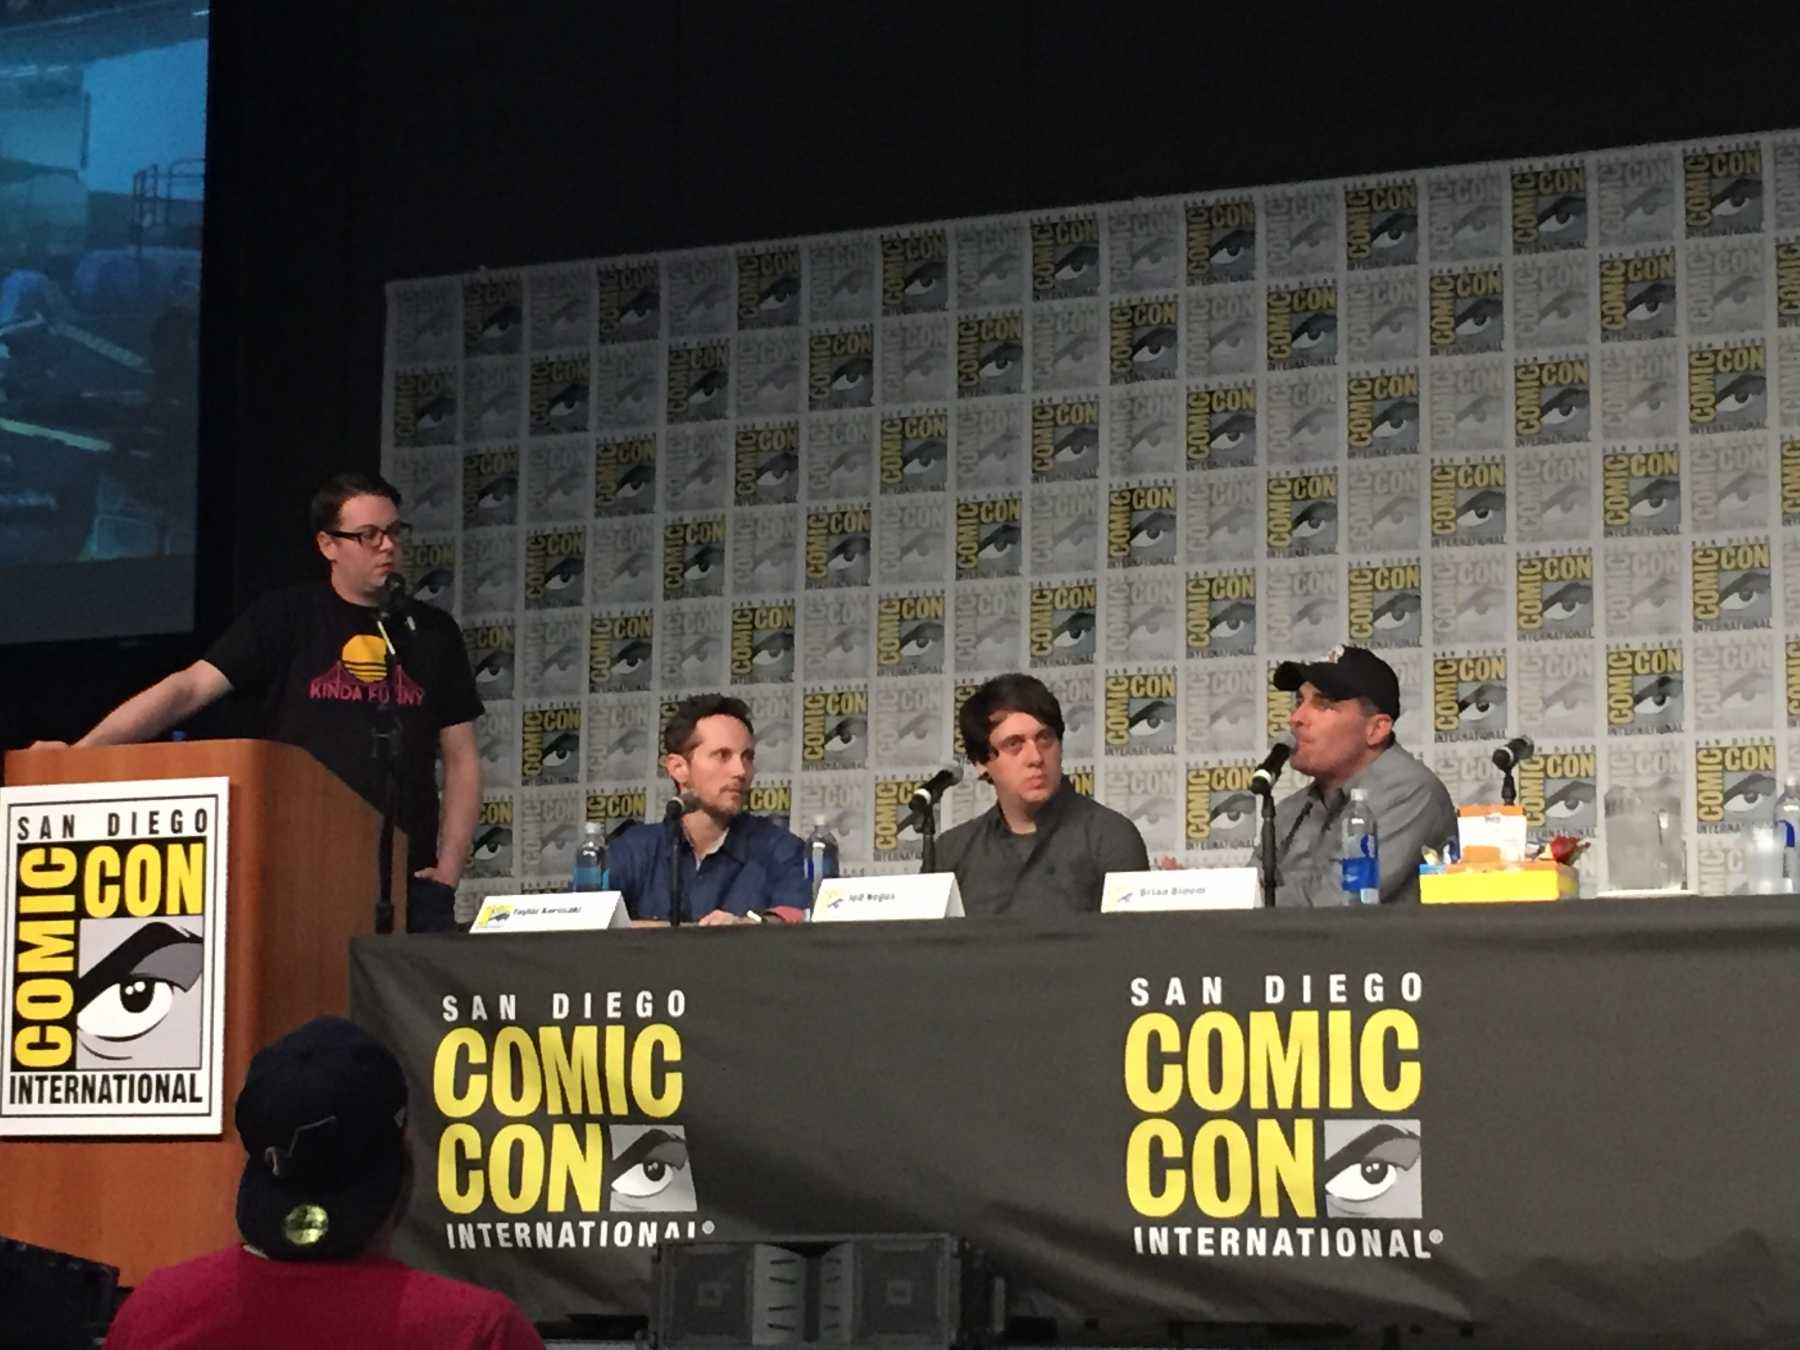 5 Takeaways From The Call Of Duty: Infinite Warfare Panel From A Non-Gamer | Infinite Warfare